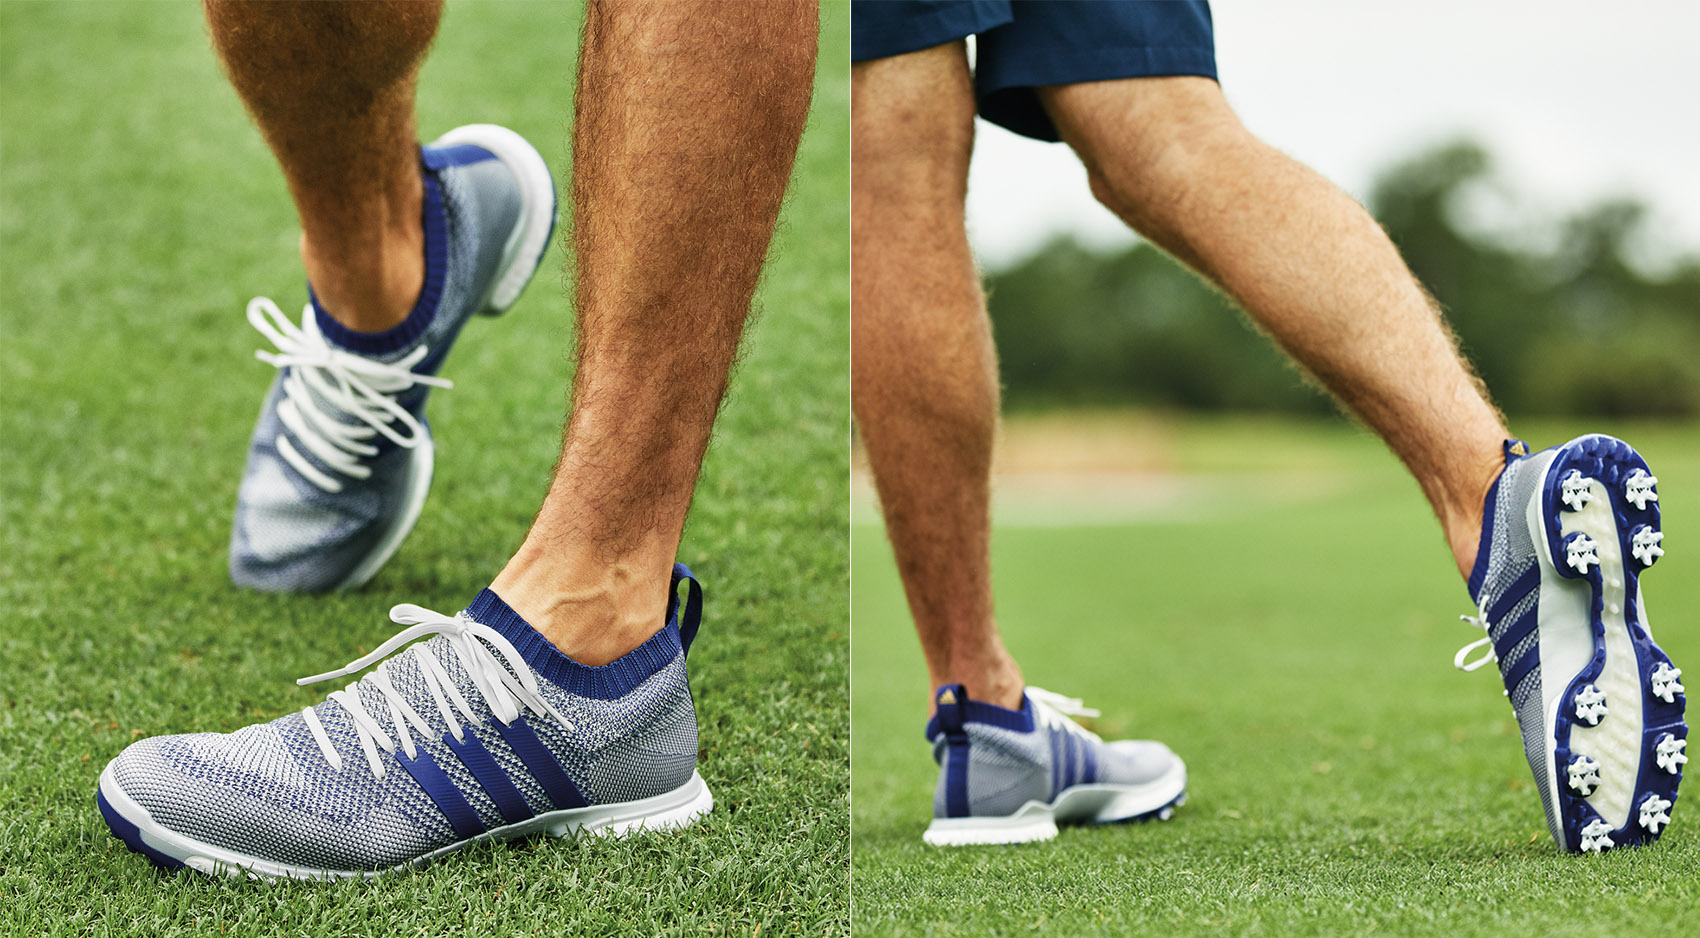 Cerdo Diligencia exégesis  Style Insider: Adidas Golf's new TOUR360 Knit & EQT BOA shoes